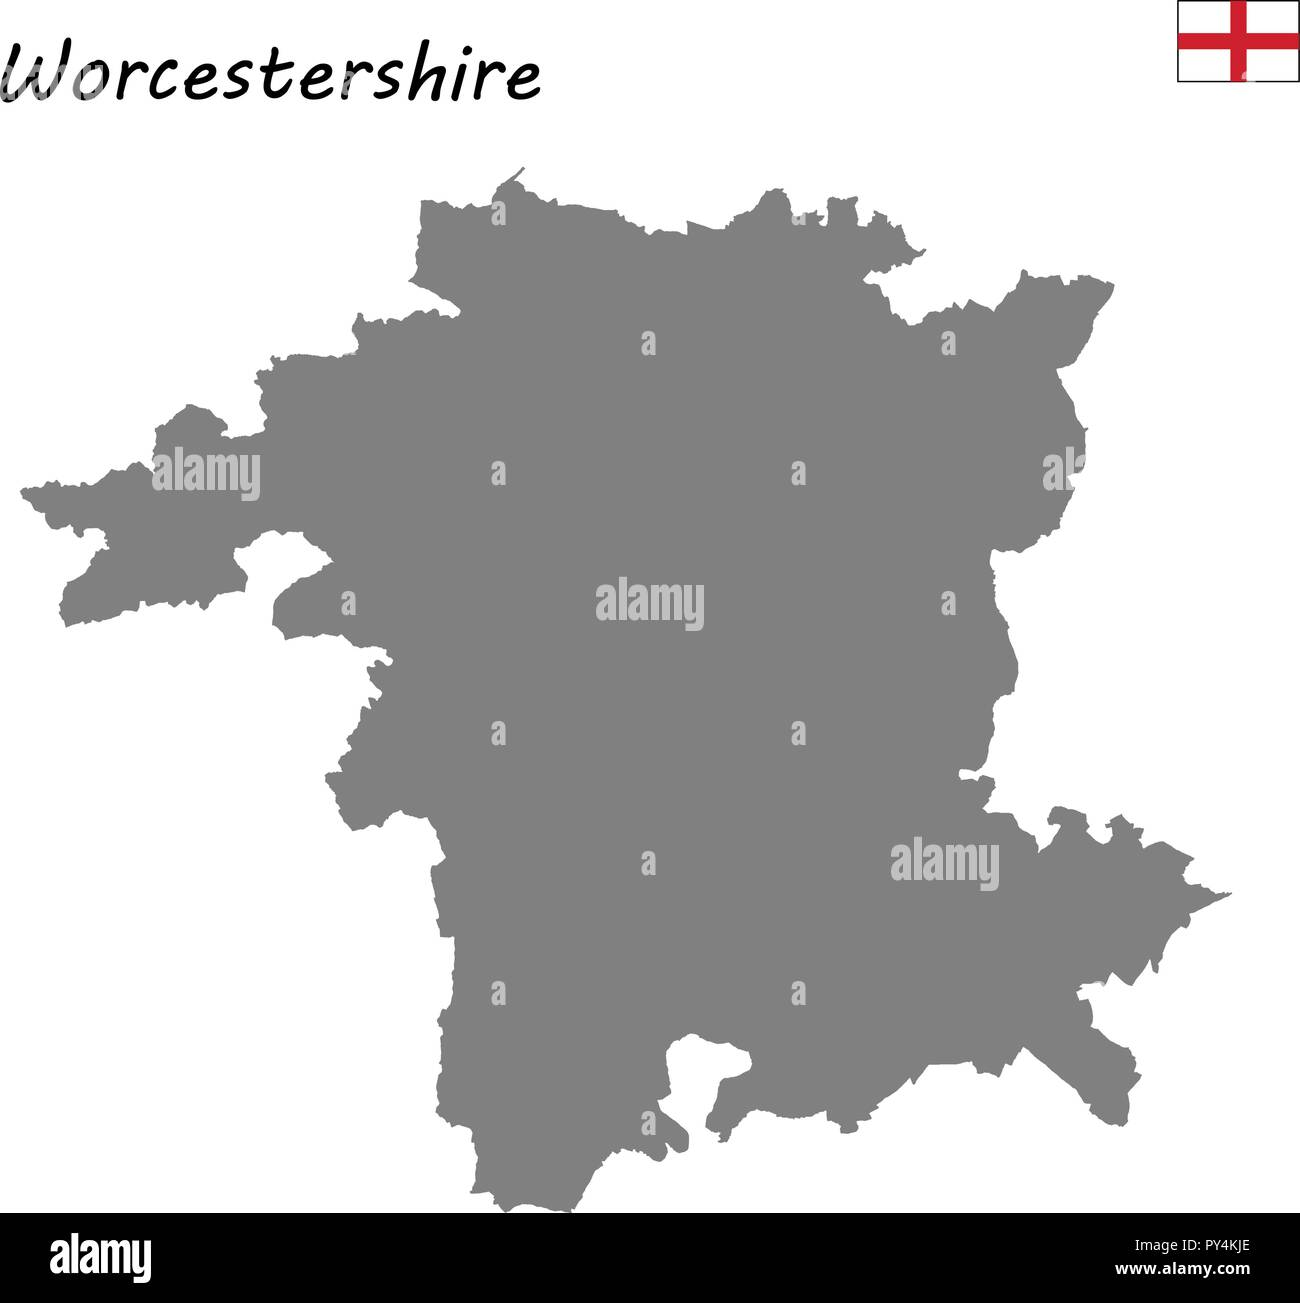 High Quality Map Is A Ceremonial County Of England Worcestershire